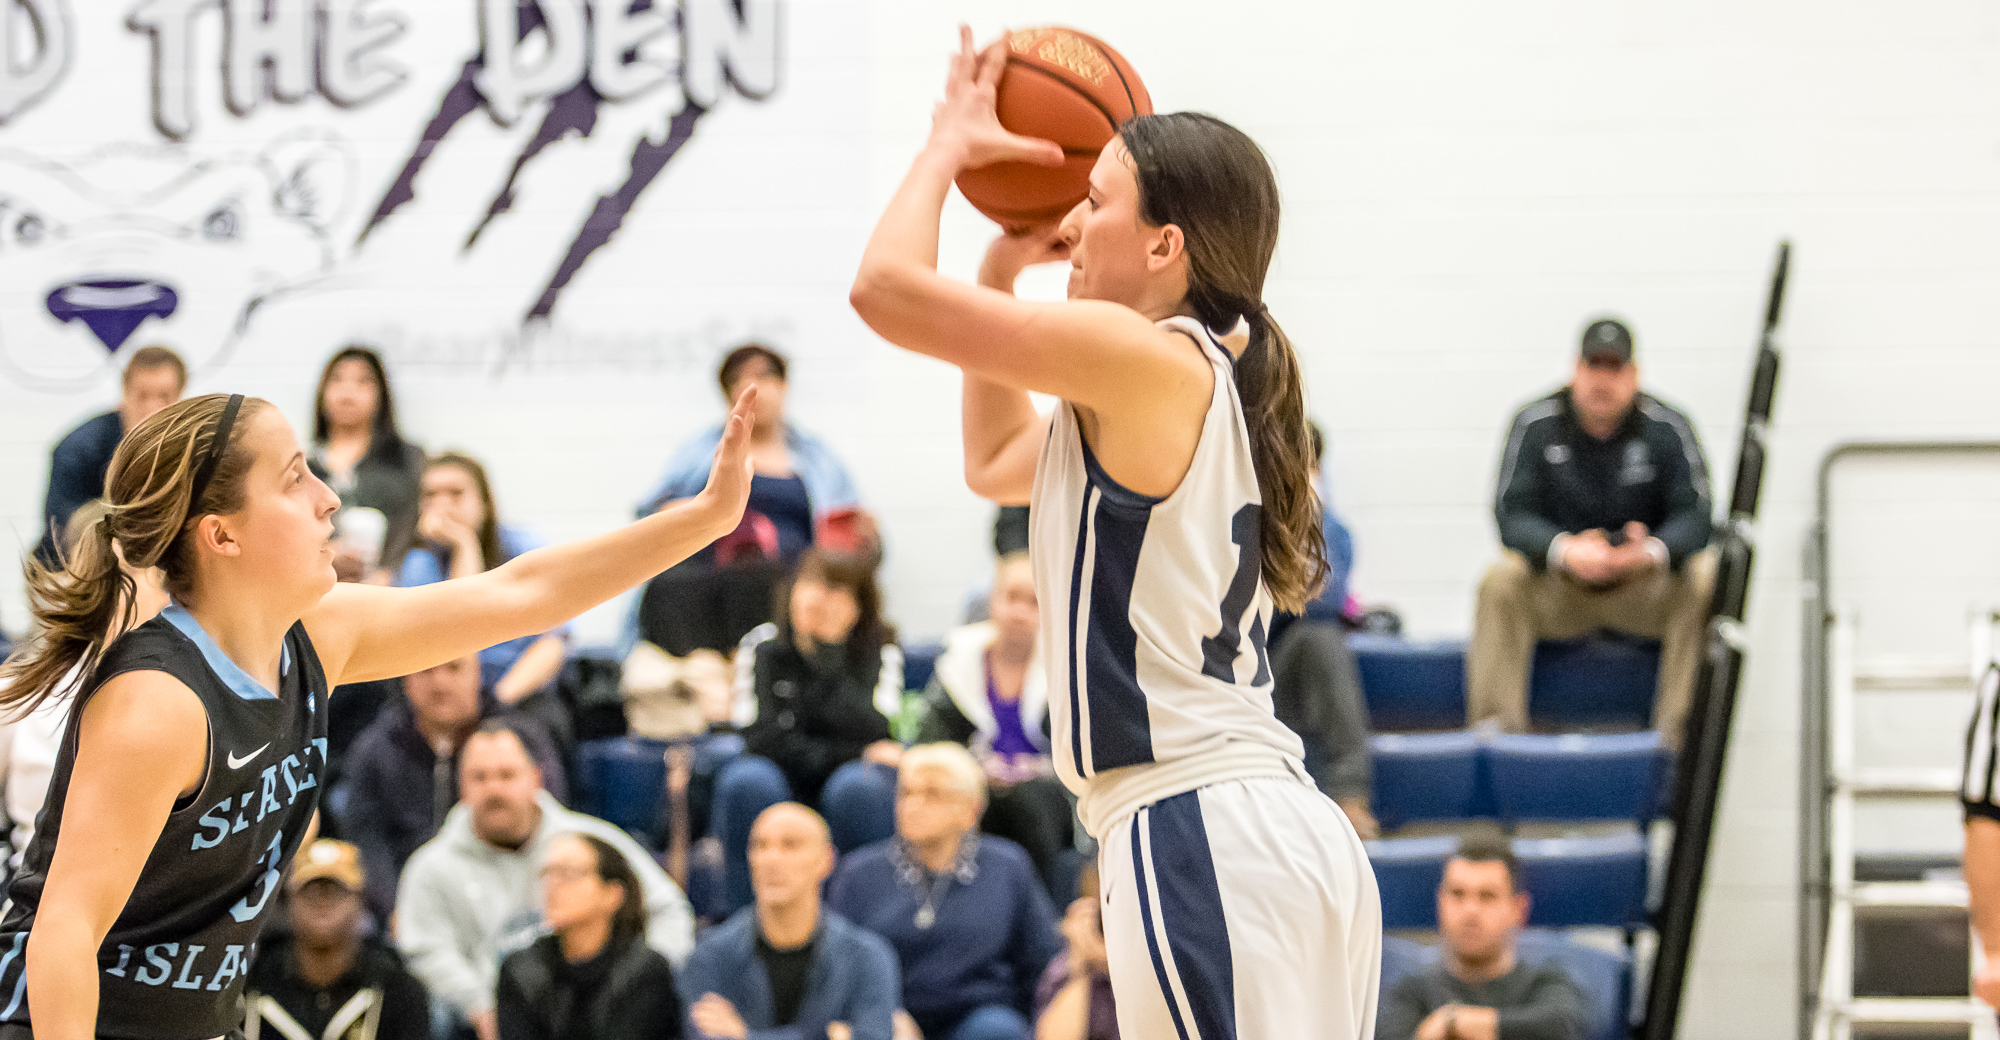 Staten Island Stifles Women's Basketball in Season Opener